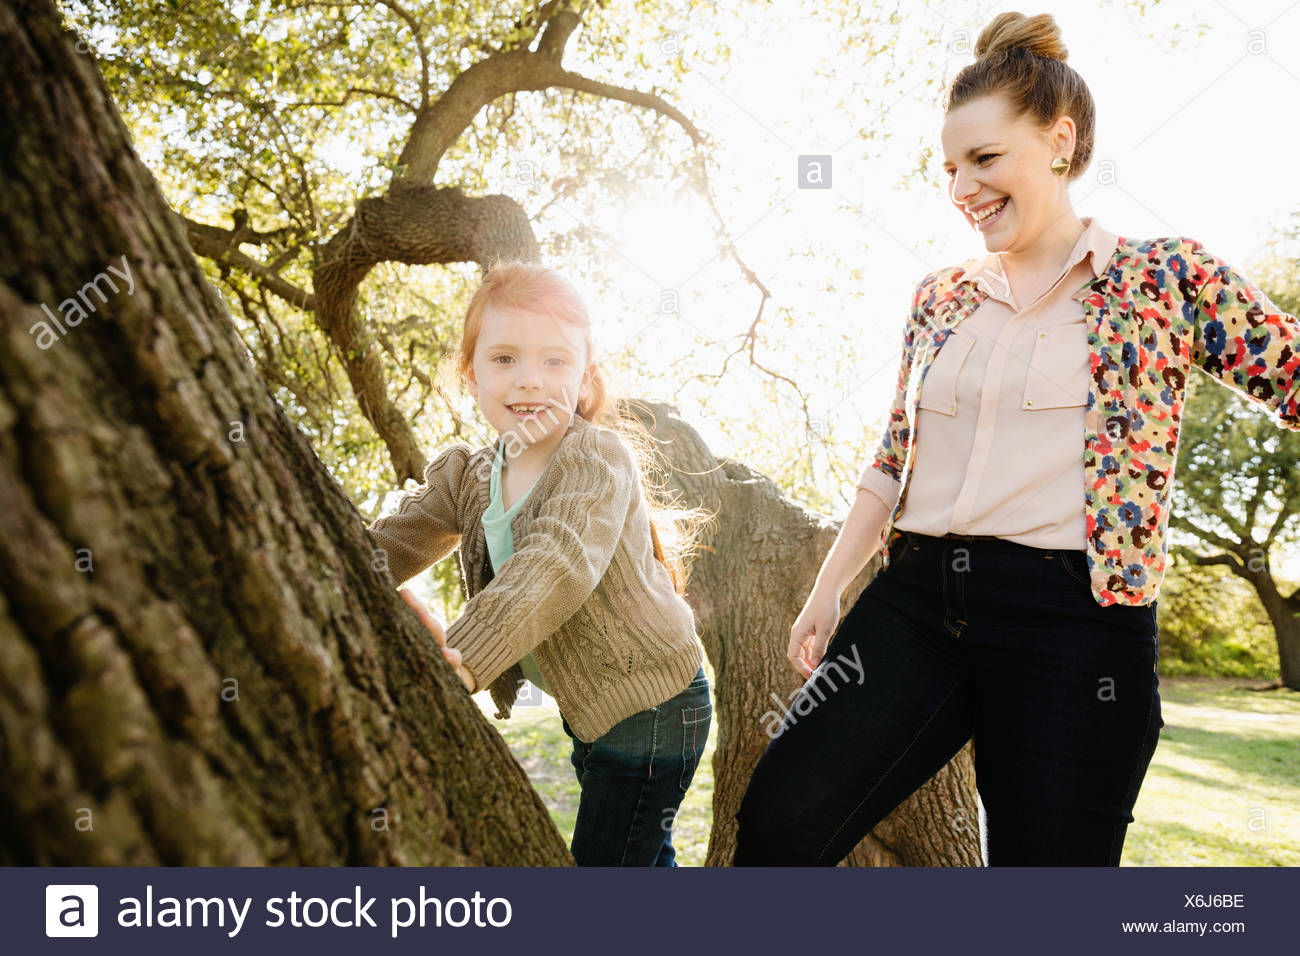 Portrait of mid adult mother watching daughter climb tree - Stock Image